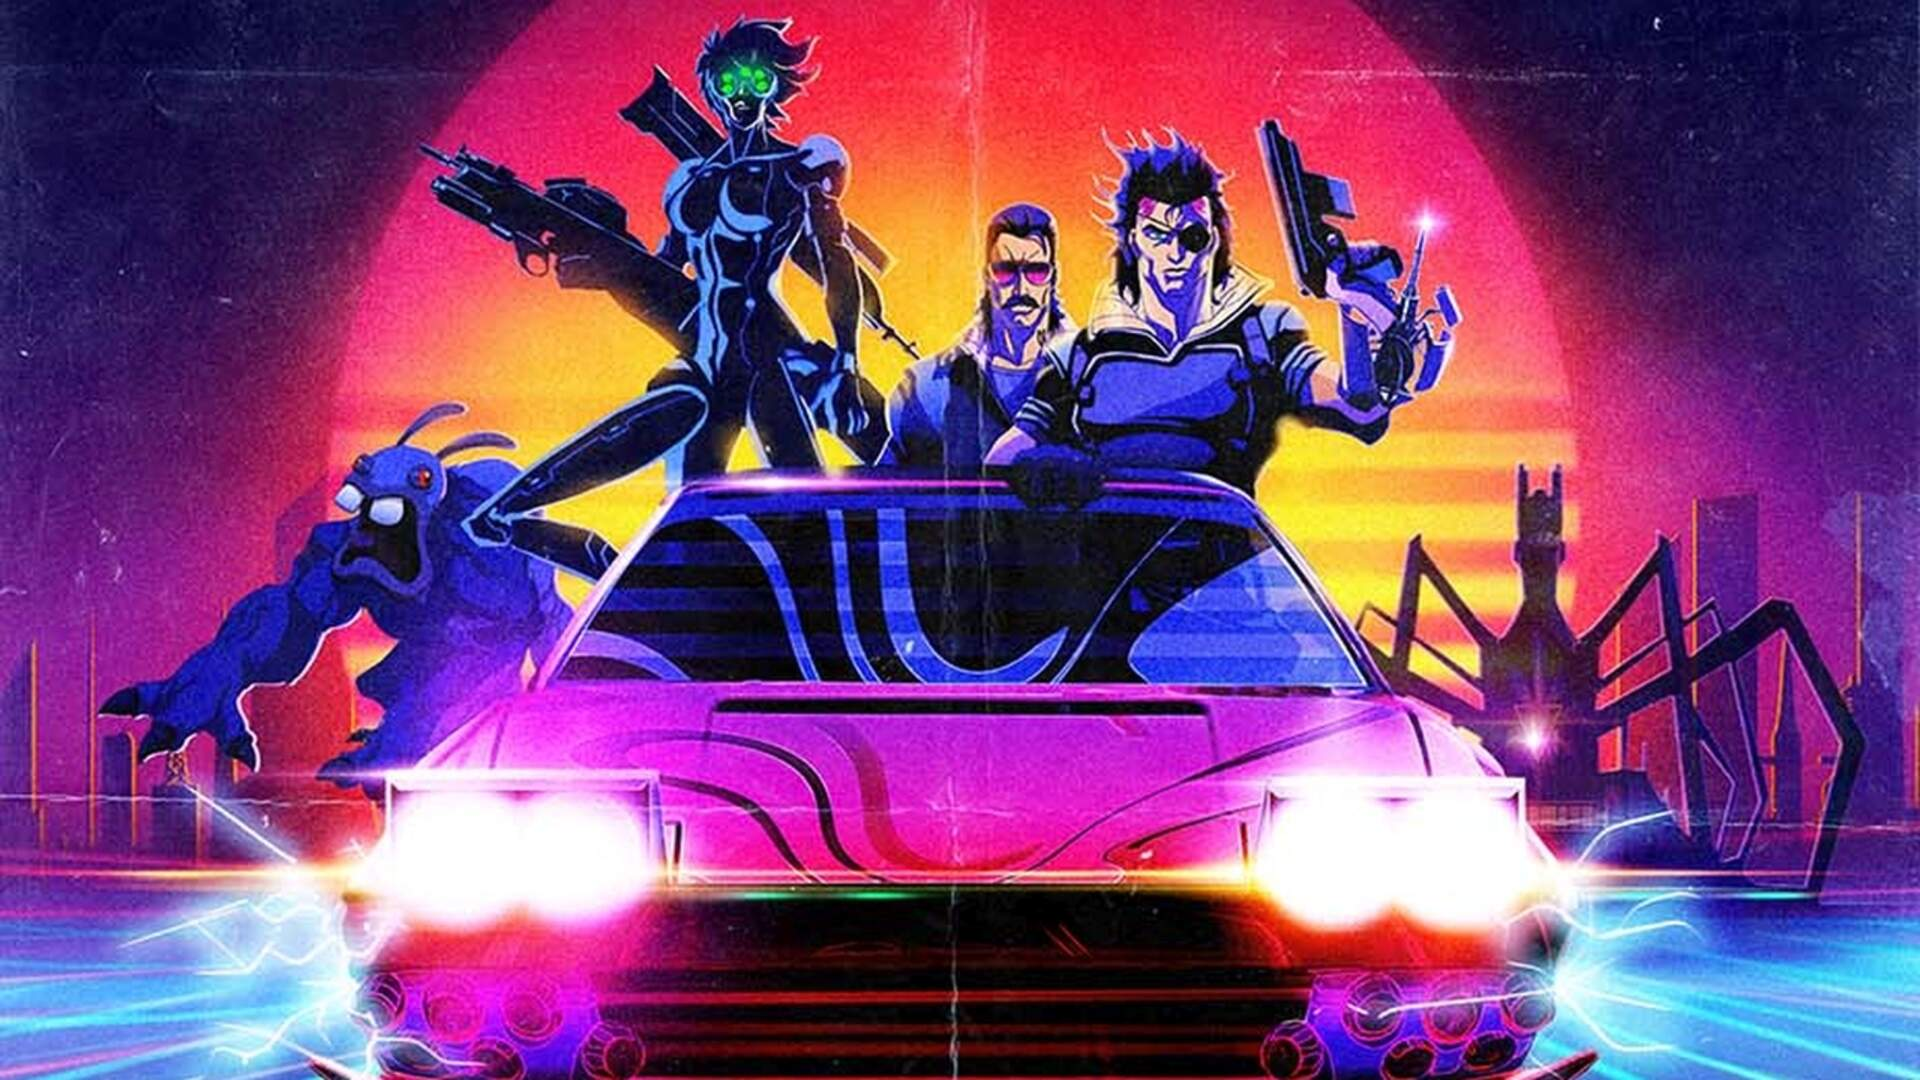 Watch Dogs, Far Cry 3: Blood Dragon, and More Set to Get Animated Series